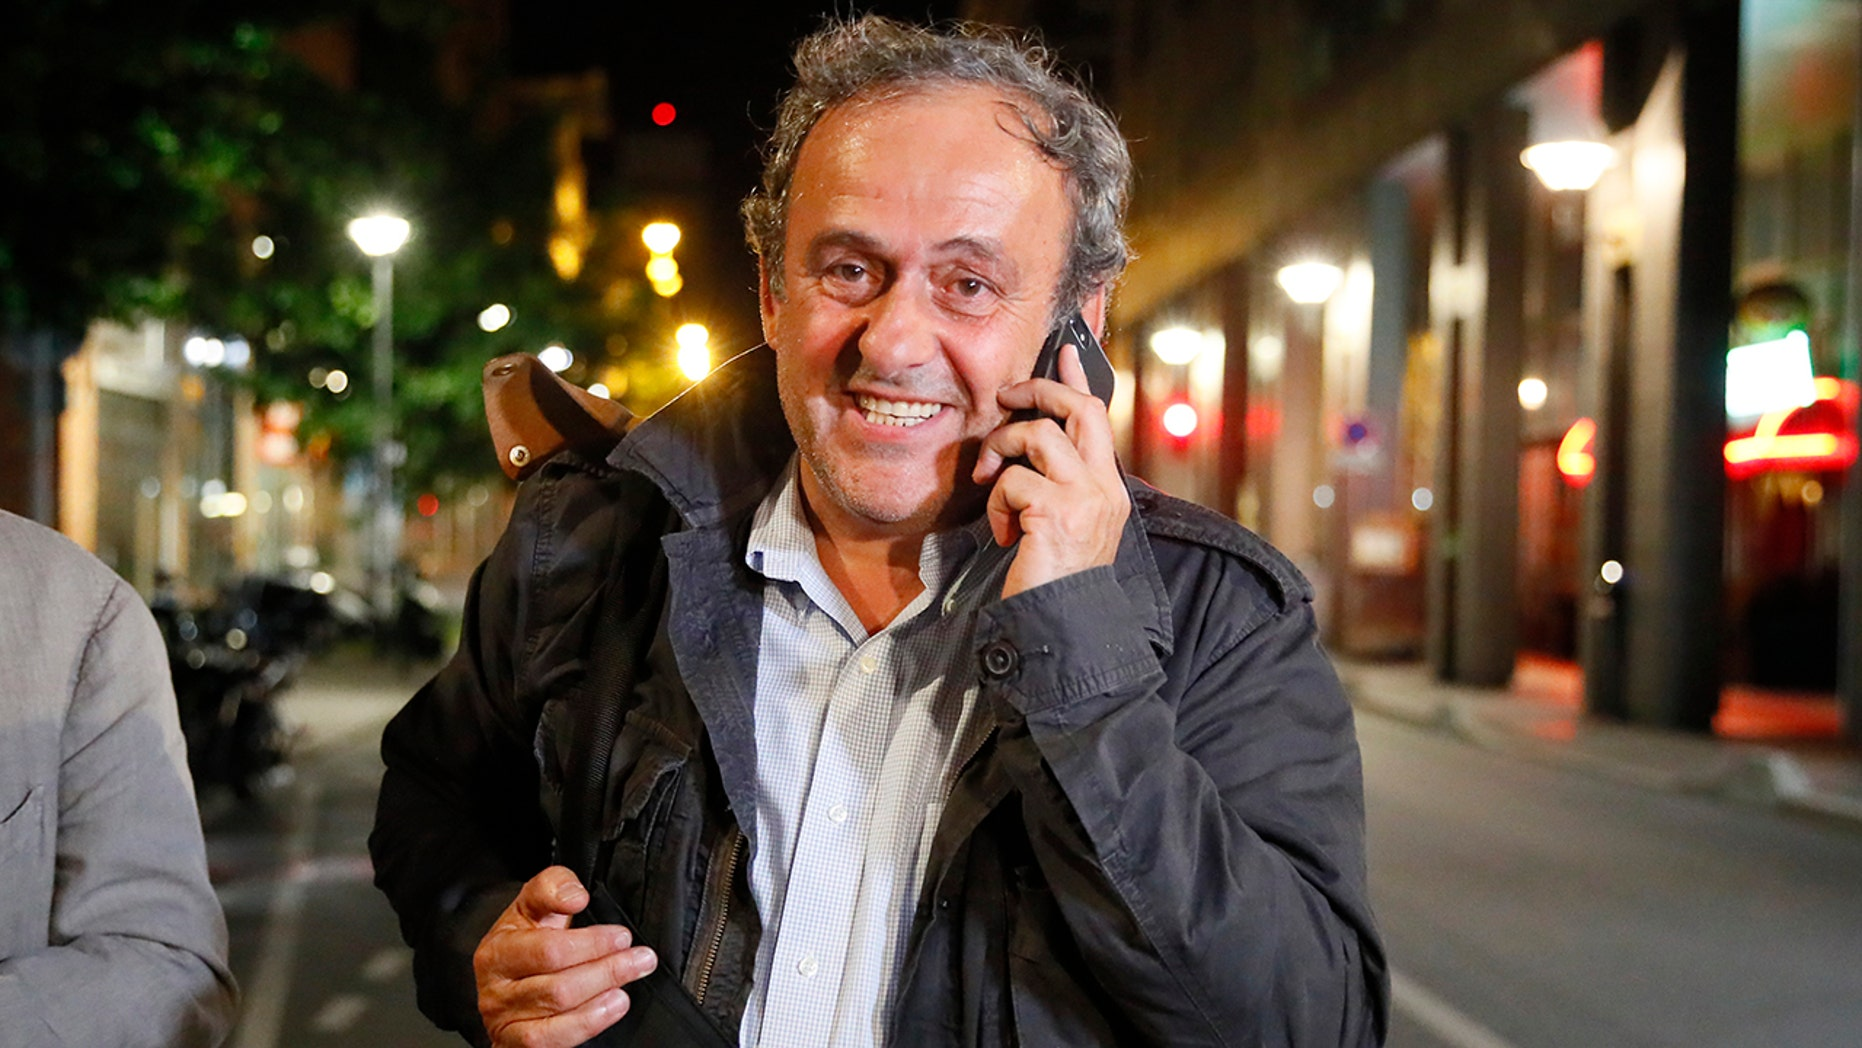 Michel Platini makes a phone call after being freed, outside the French police anti-corruption and financial crimes office in Nanterre, outside Paris, early Wednesday, June 19, 2019. Former UEFA president Michel Platini proclaimed his innocence during police questioning Tuesday following his arrest as part of a corruption probe into the vote that gave the 2022 World Cup to Qatar. (AP Photo/ Francois Mori)